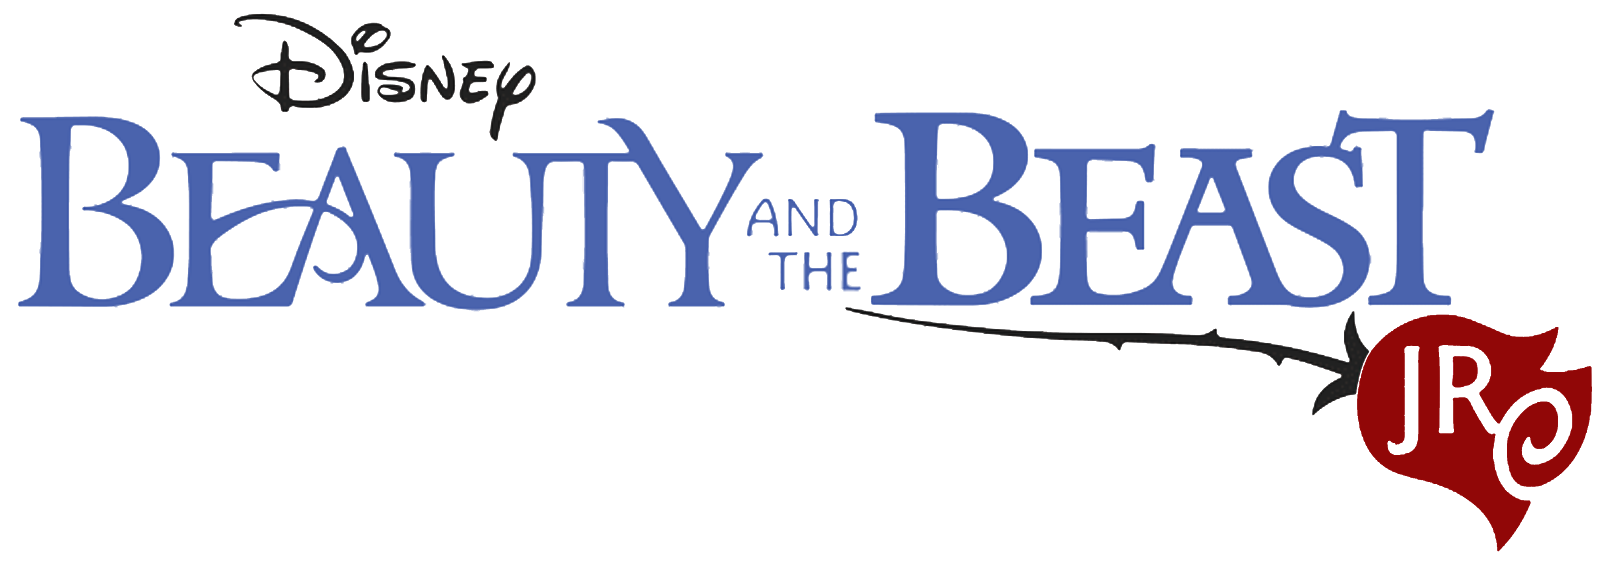 Image Result For Beauty And The Beast Musical Logo Musical Logo Beauty And The Beast Musicals